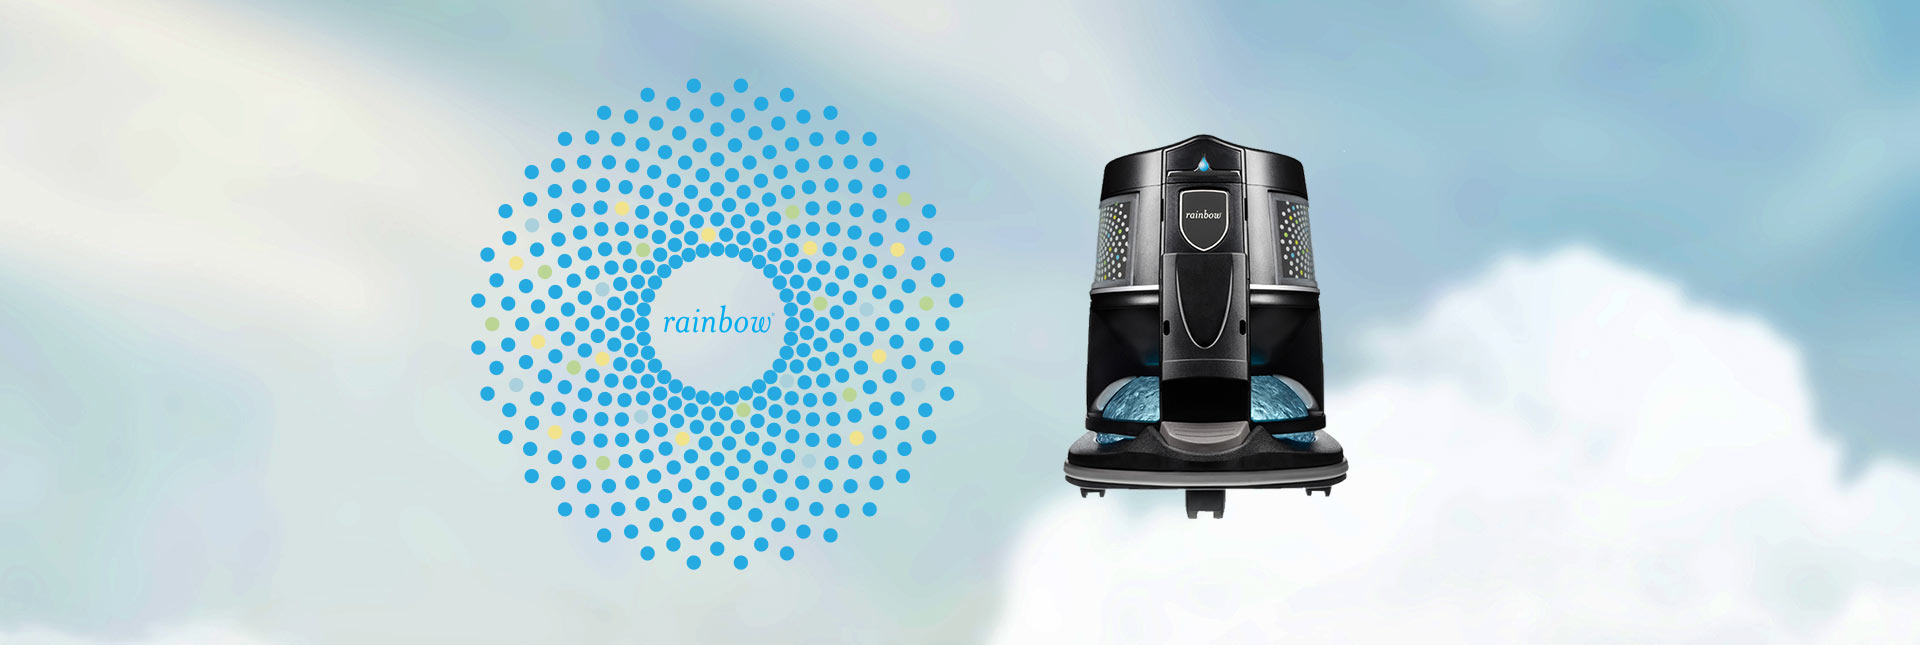 The Rainbow SRX has a powerful air cleaning capability that